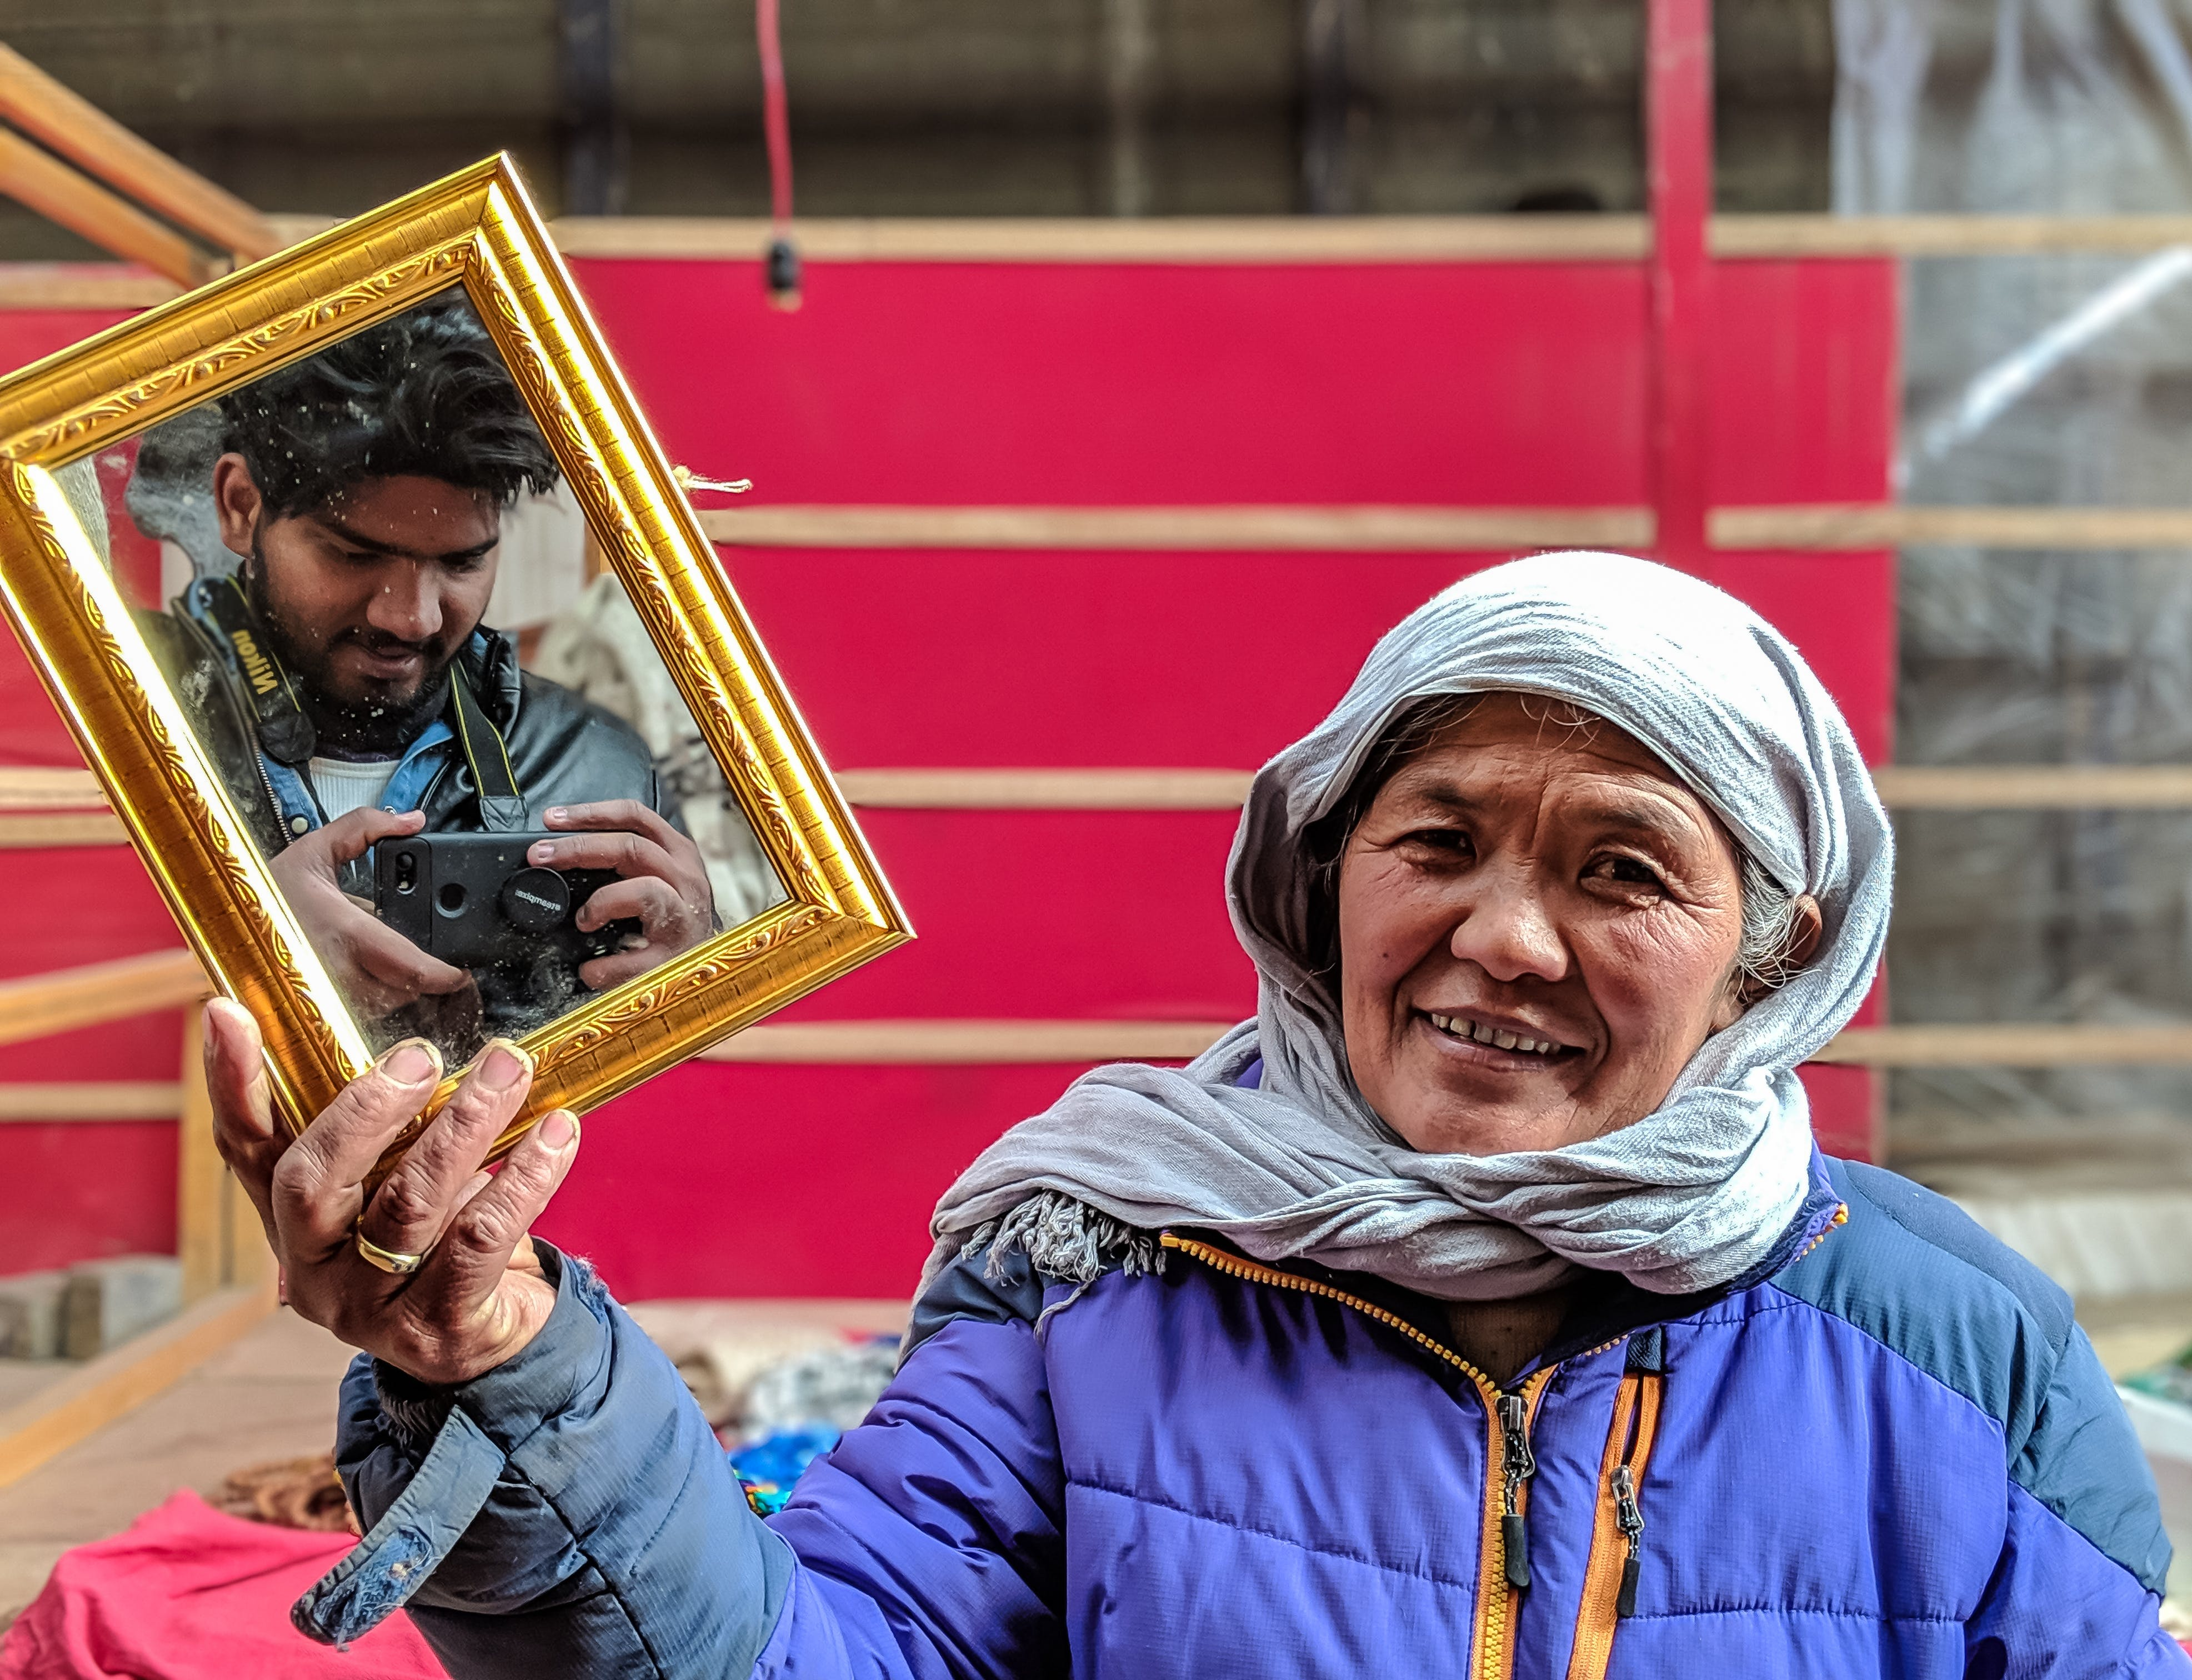 Woman Holding Mirror